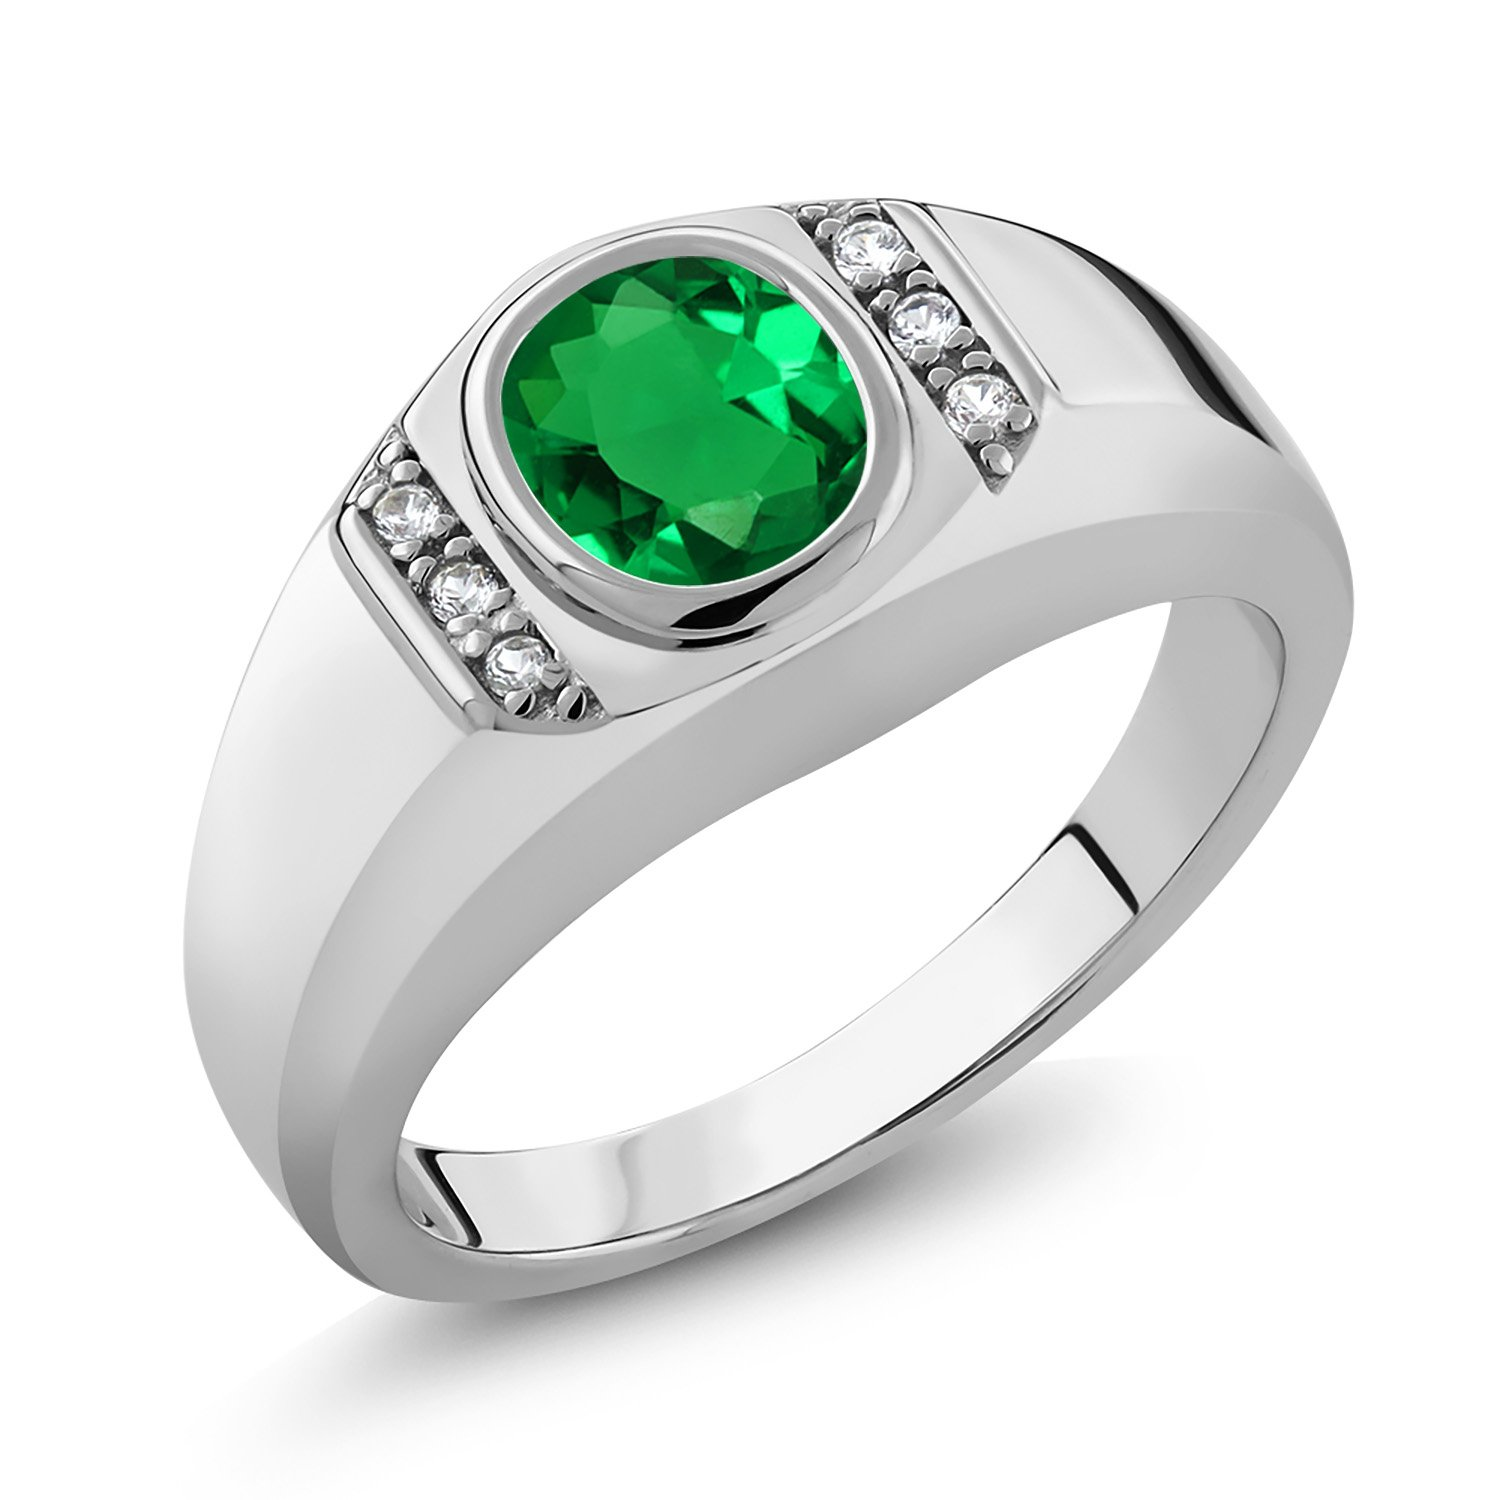 Gem Stone King 925 Sterling Silver Green Simulated Emerald and White Created Sapphire Men's Ring (1.06 Cttw, Available in size 7, 8, 9, 10, 11, 12, 13)